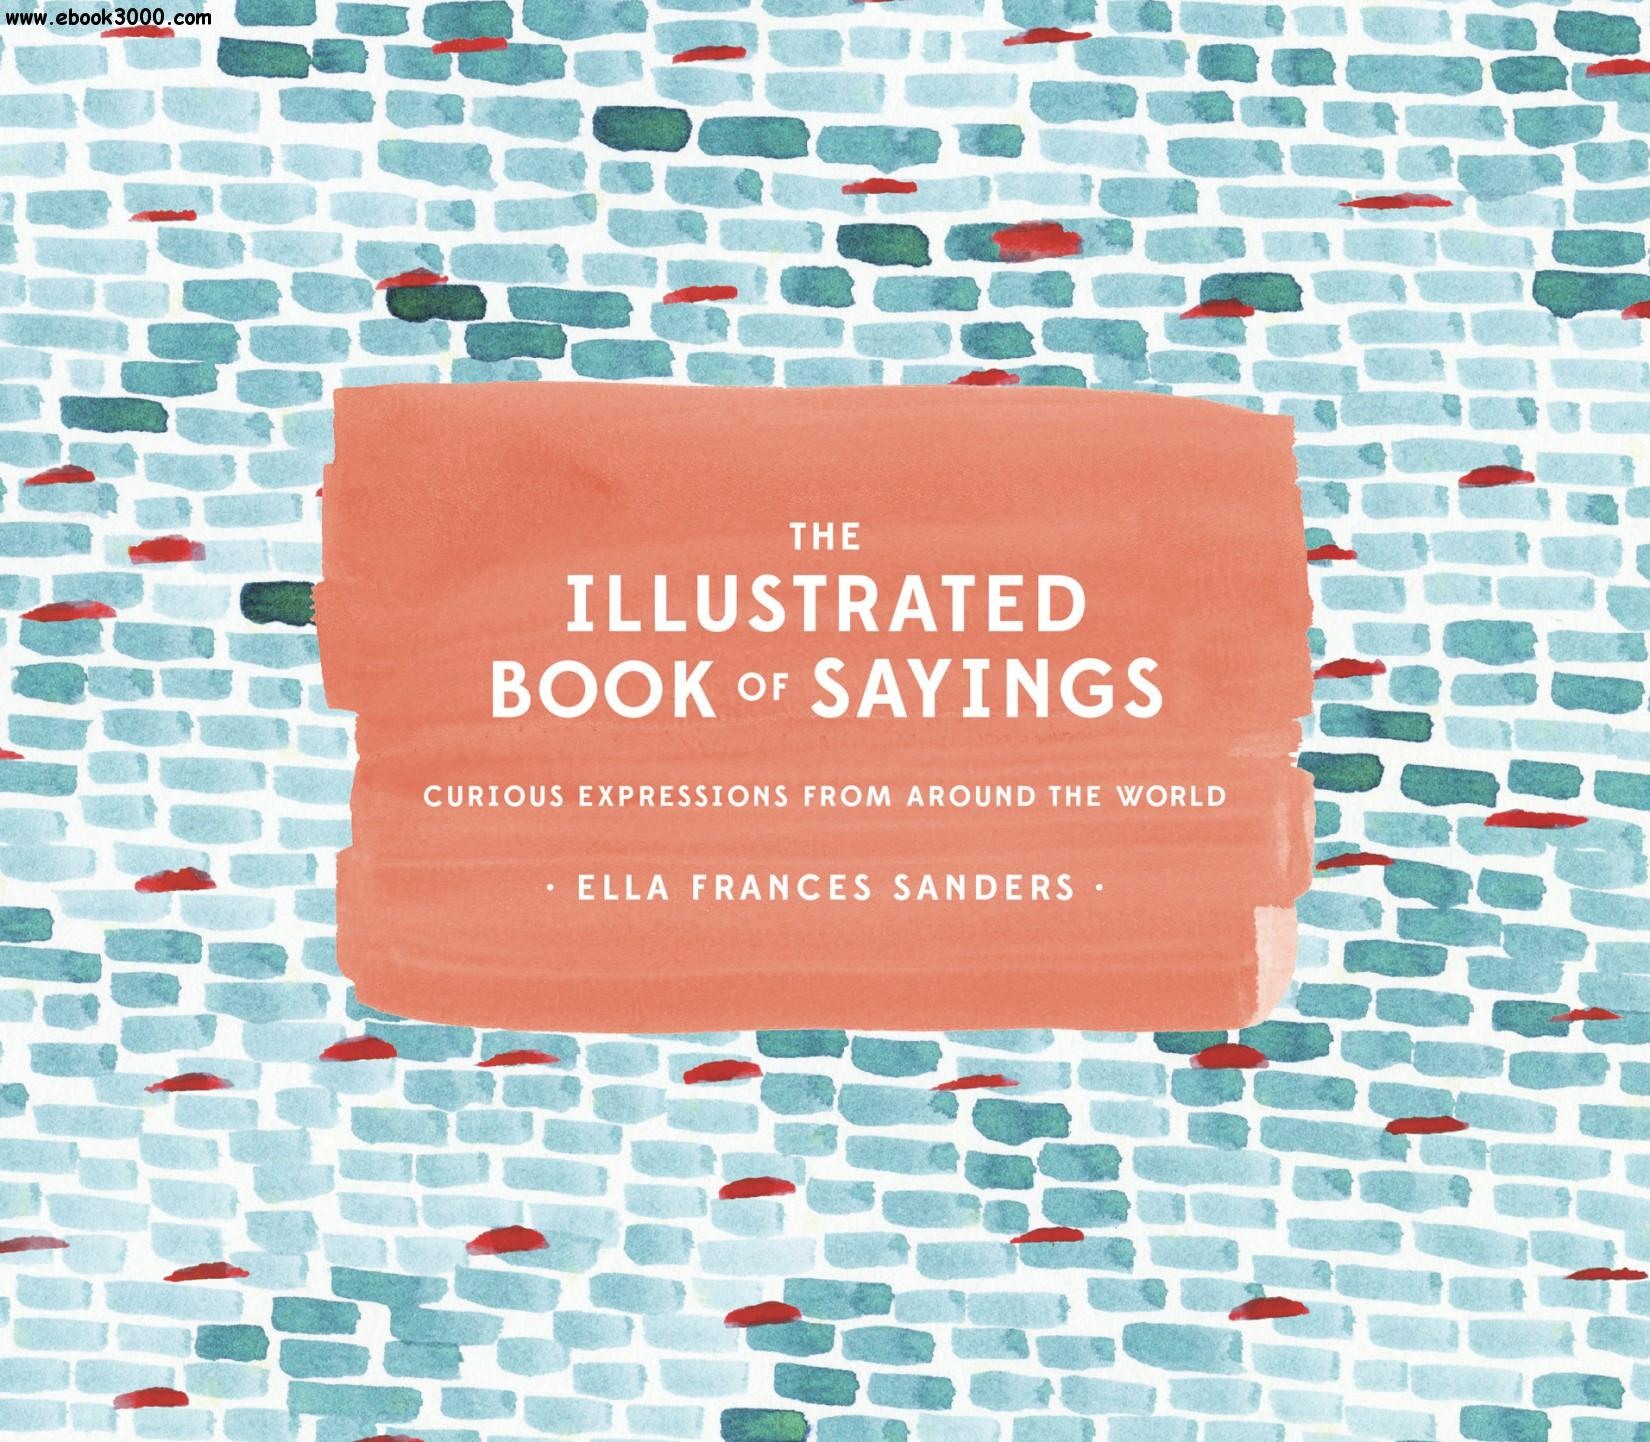 The Illustrated Book of Sayings.jpg